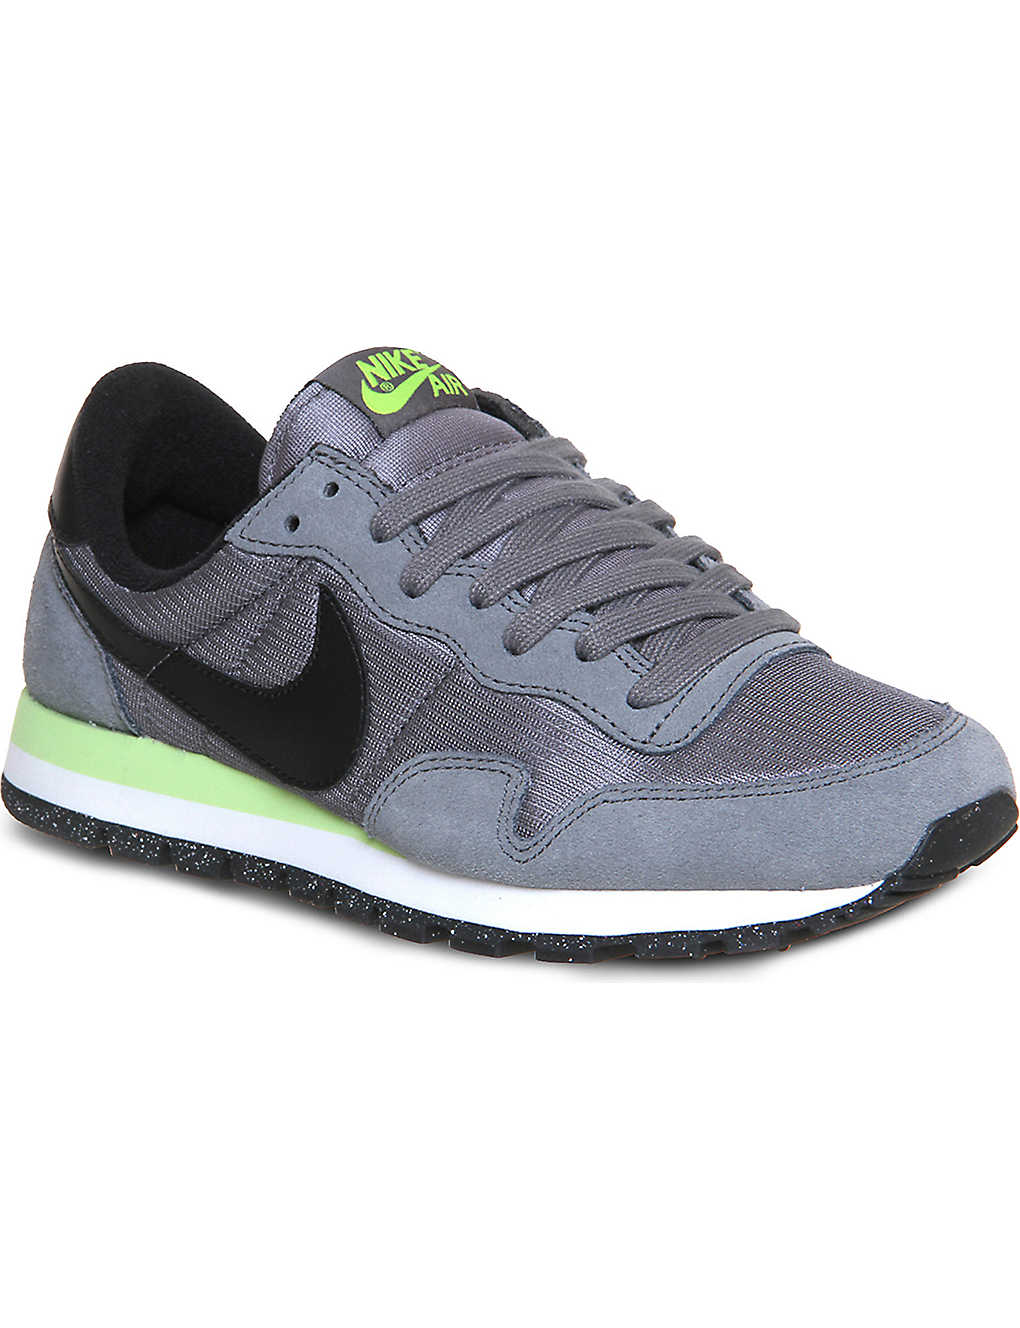 537f957ecf0 NIKE - Air Pegasus 83 trainers | Selfridges.com